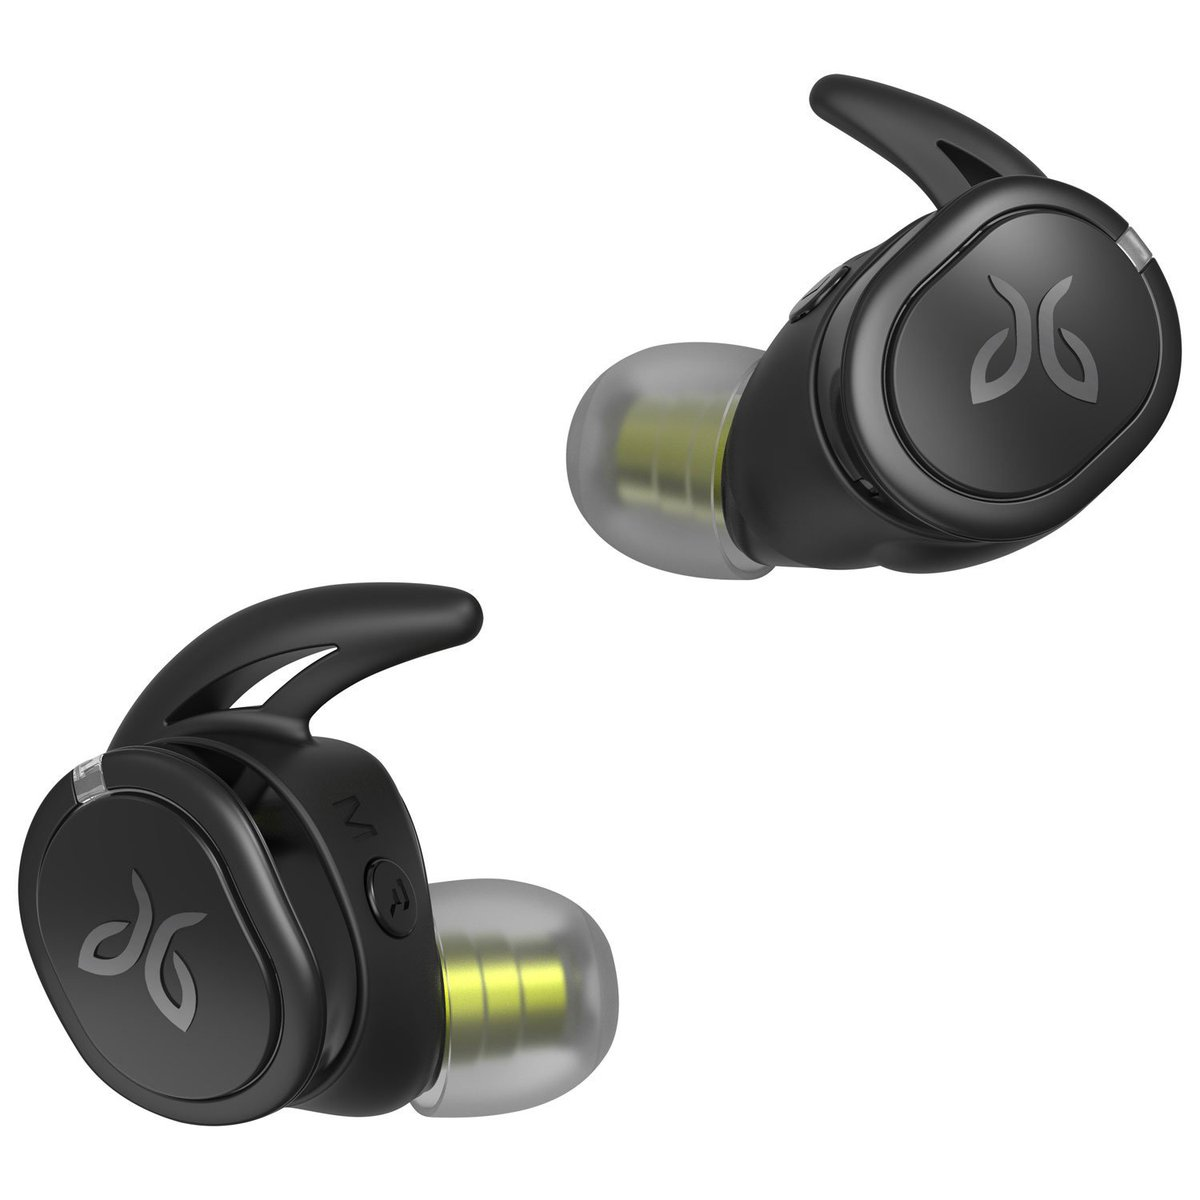 81ccc0f2742 The NEW RUN XT is @jaybirdsport's second generation of all-terrain true  wireless earbuds, with an updated, fully waterproof design for added  reliability in ...